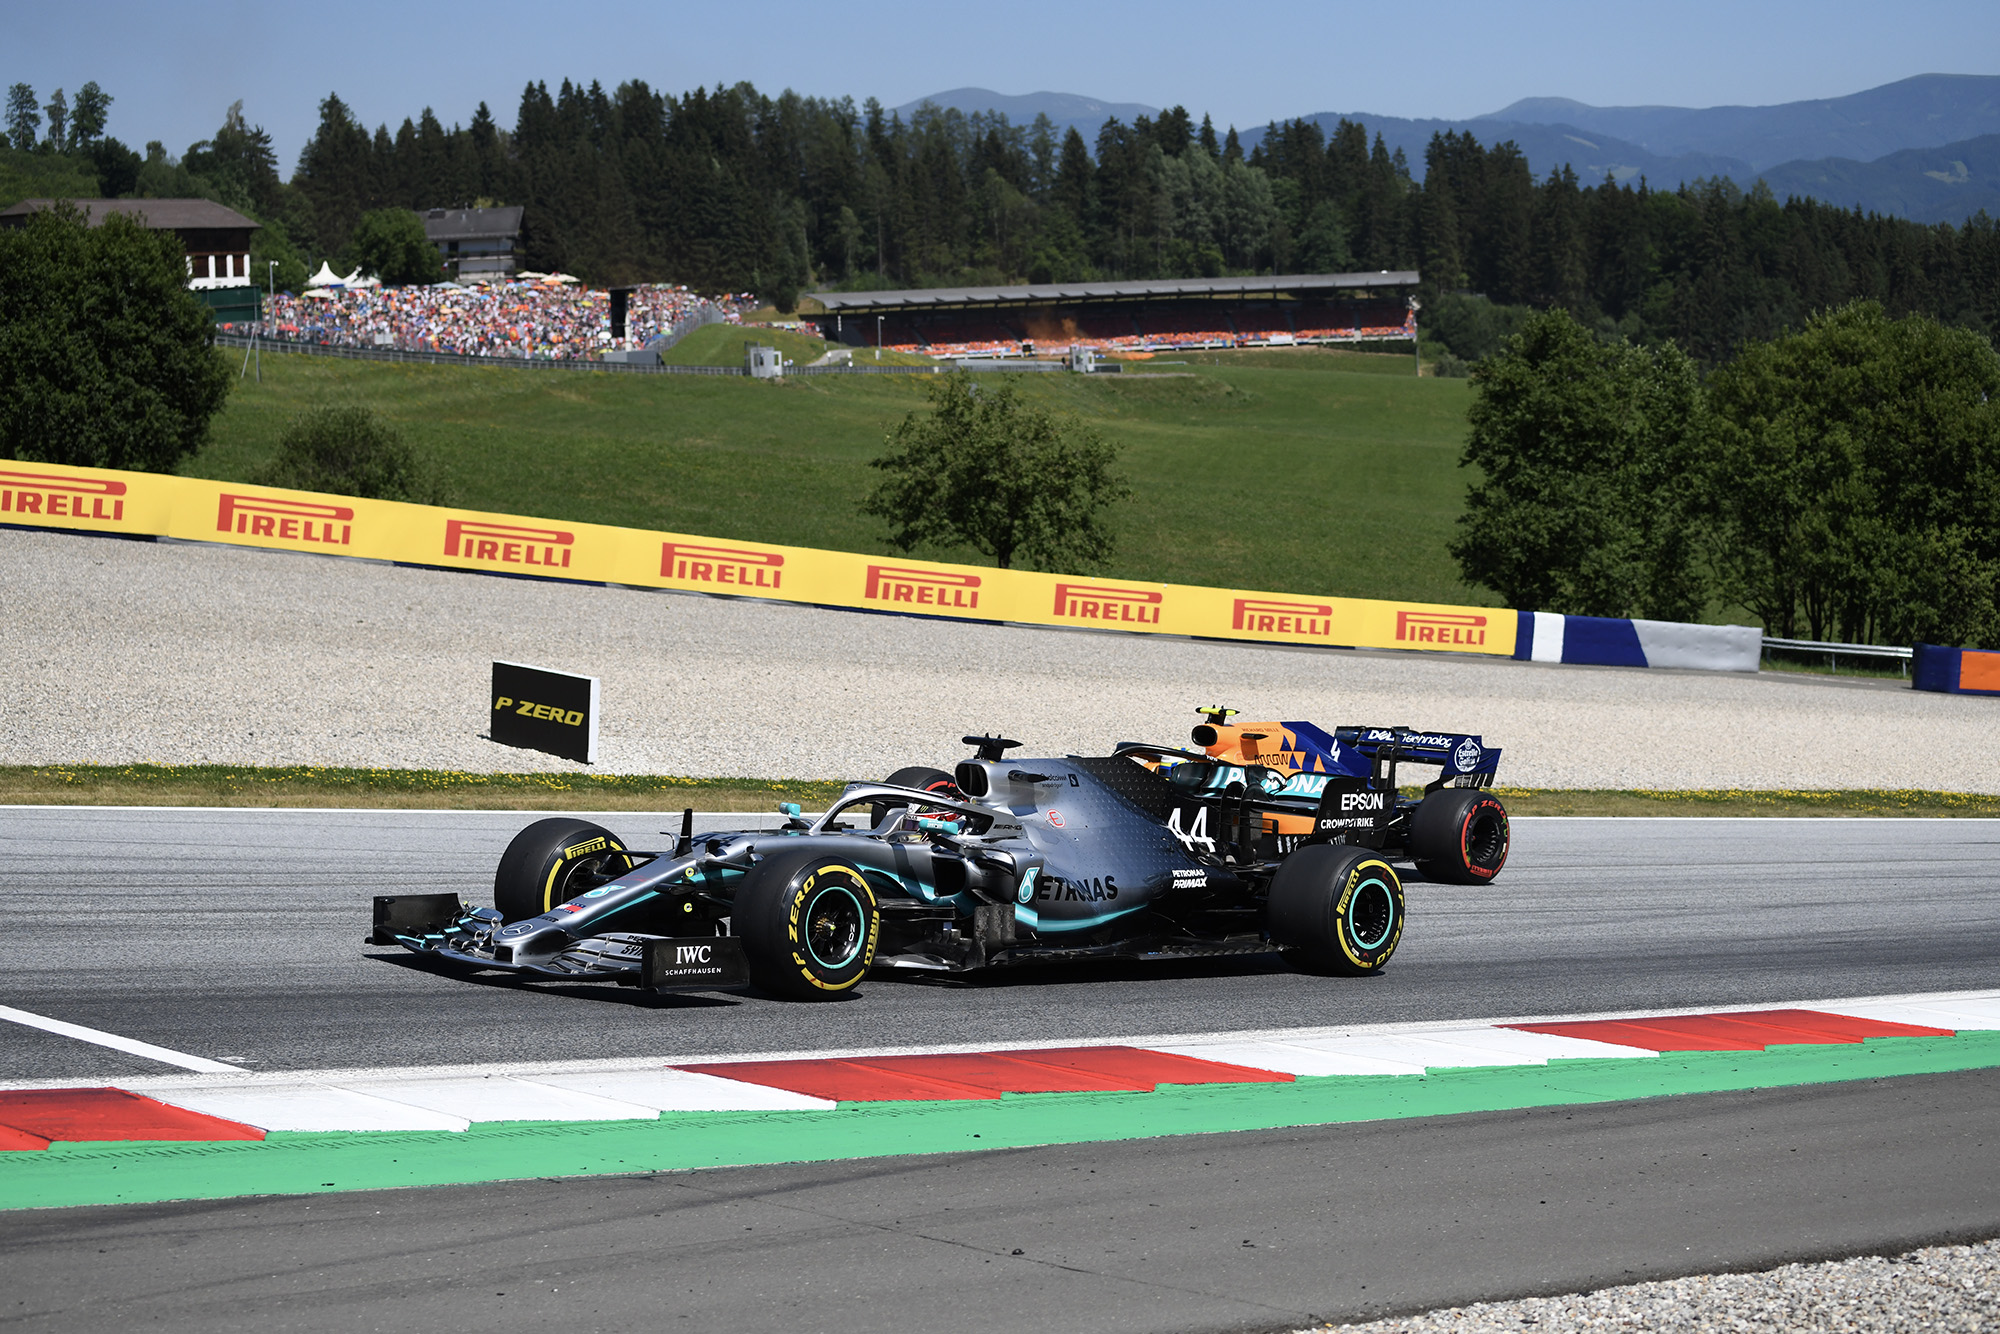 Lando Norris tries to pass Lewis Hamilton on this inside at the 2019 Austrian Grand Prix